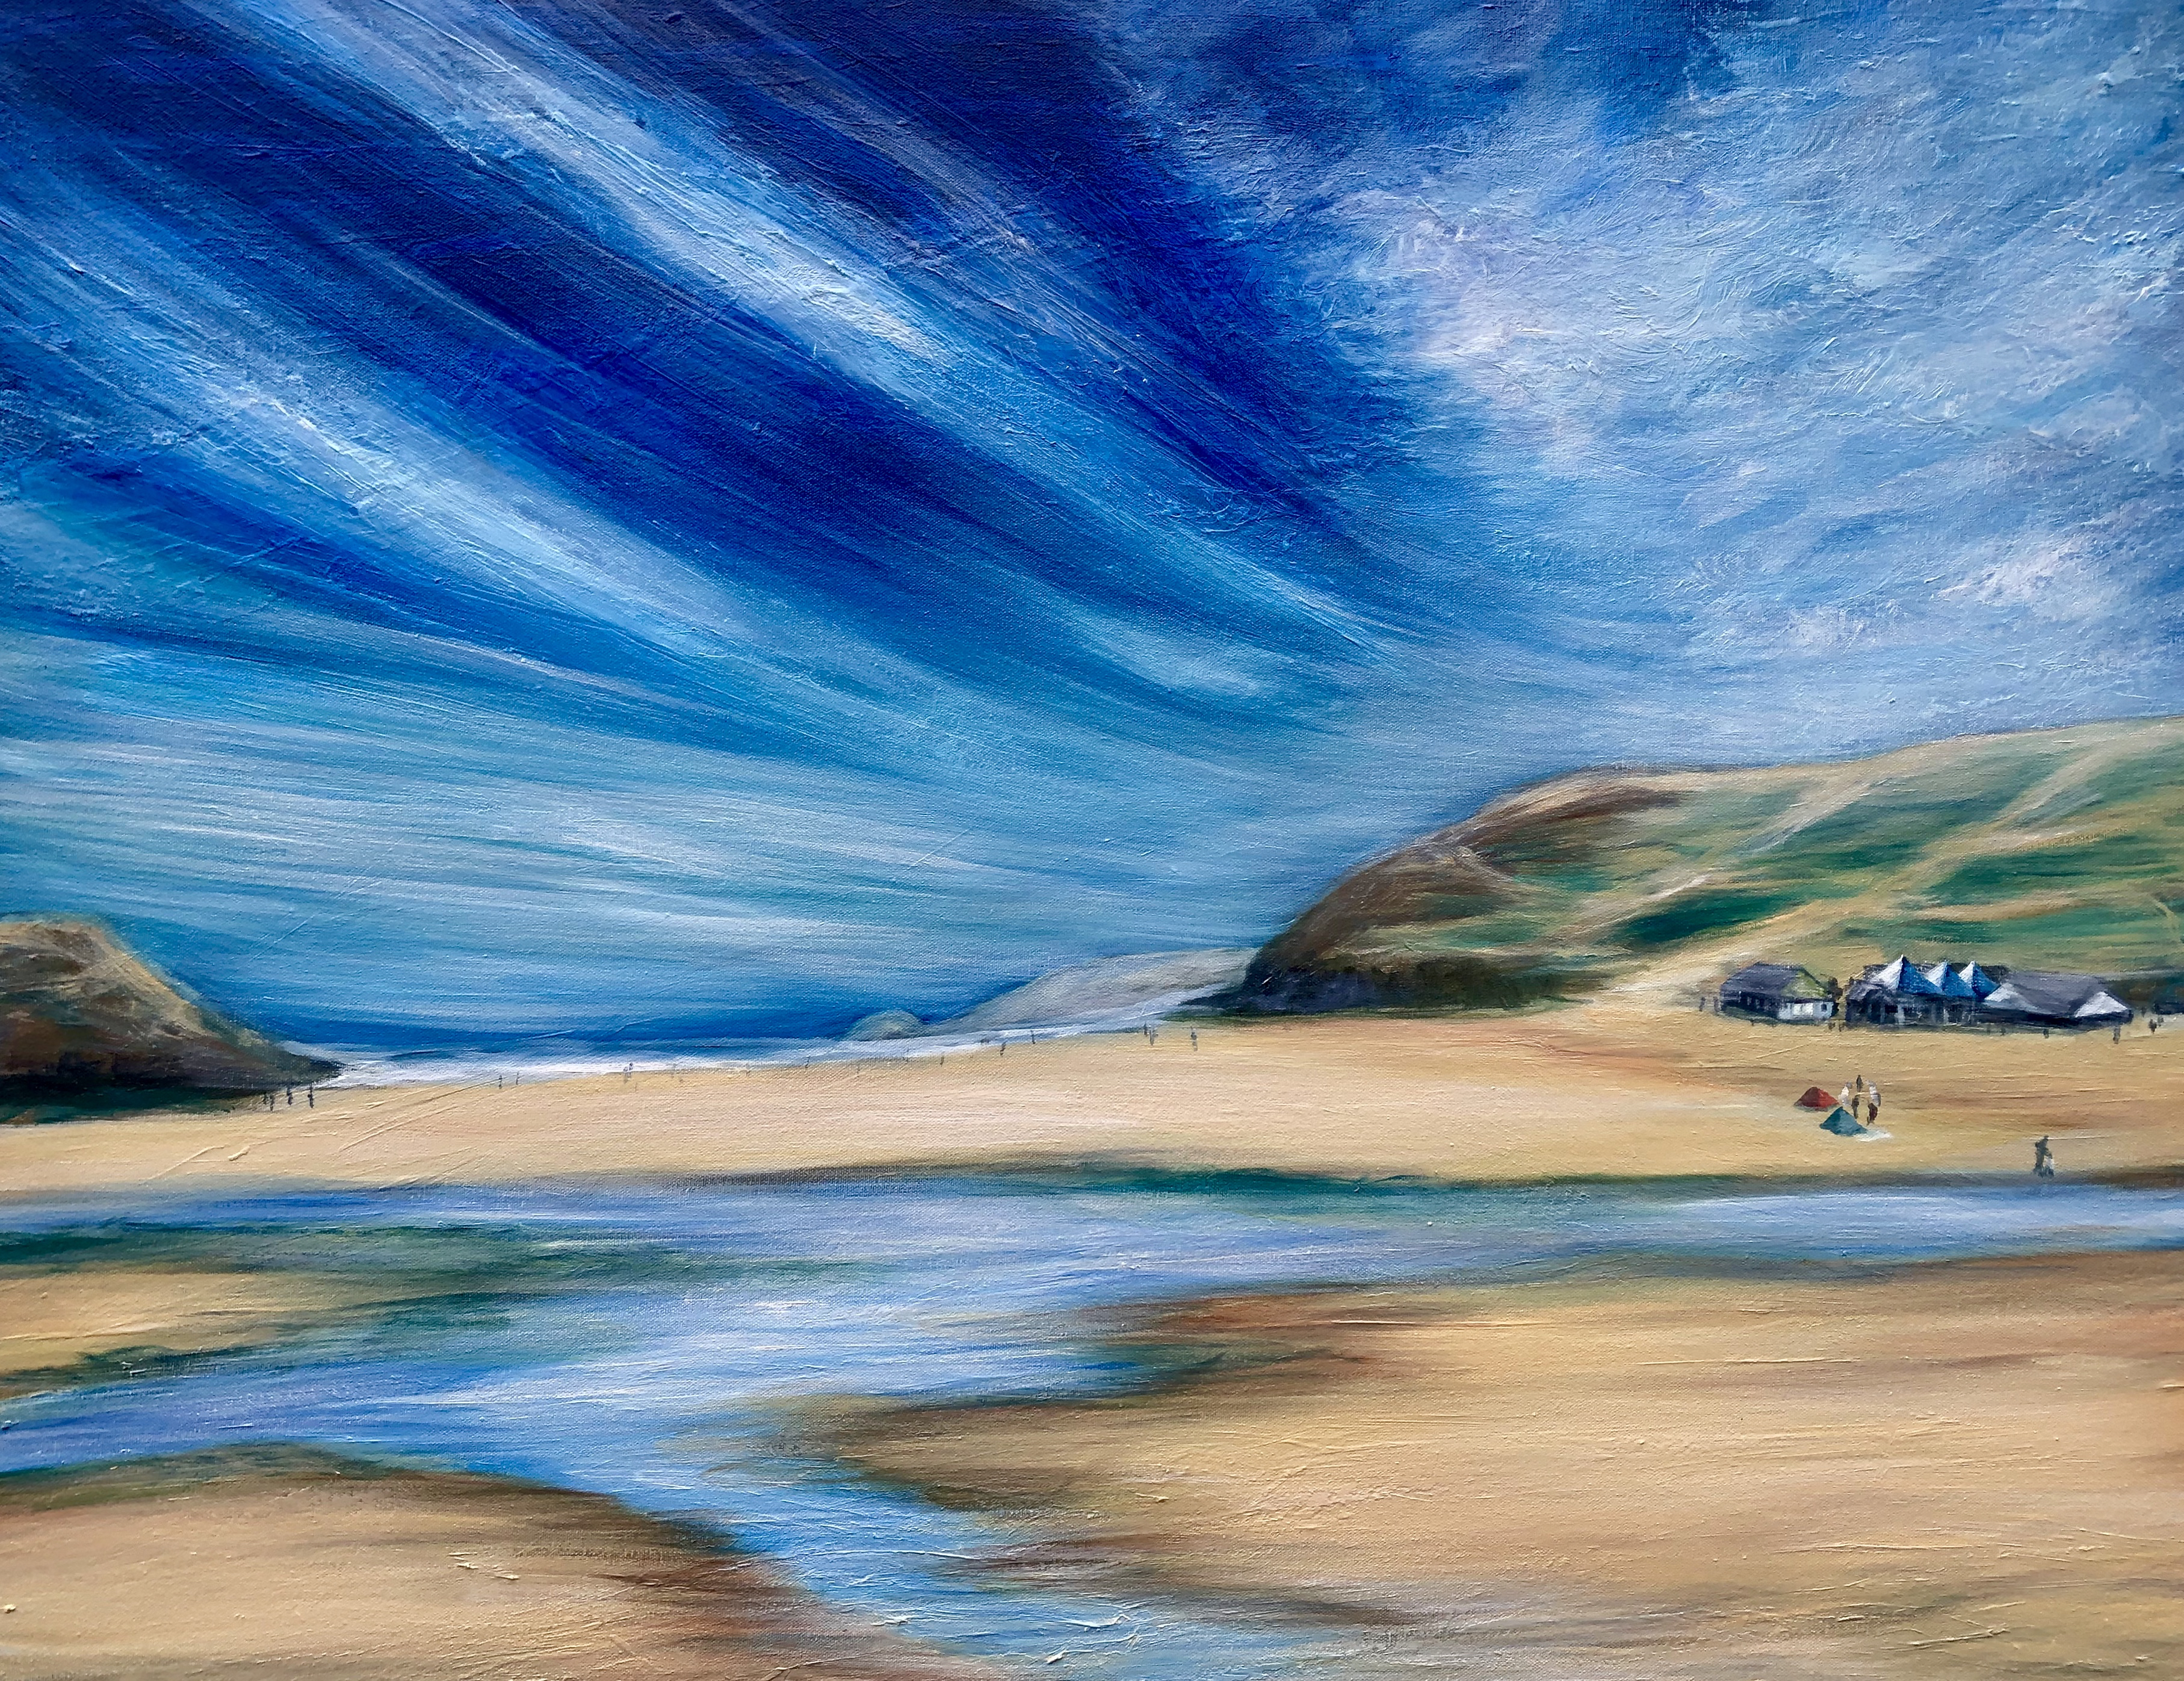 """Perranporth Beach, Cornwall"" OIl on canvas painting Height 28 ins x width 36 inches £350. Shows a large blue sky and wide beach with the Watering Hole cafe on the beach."